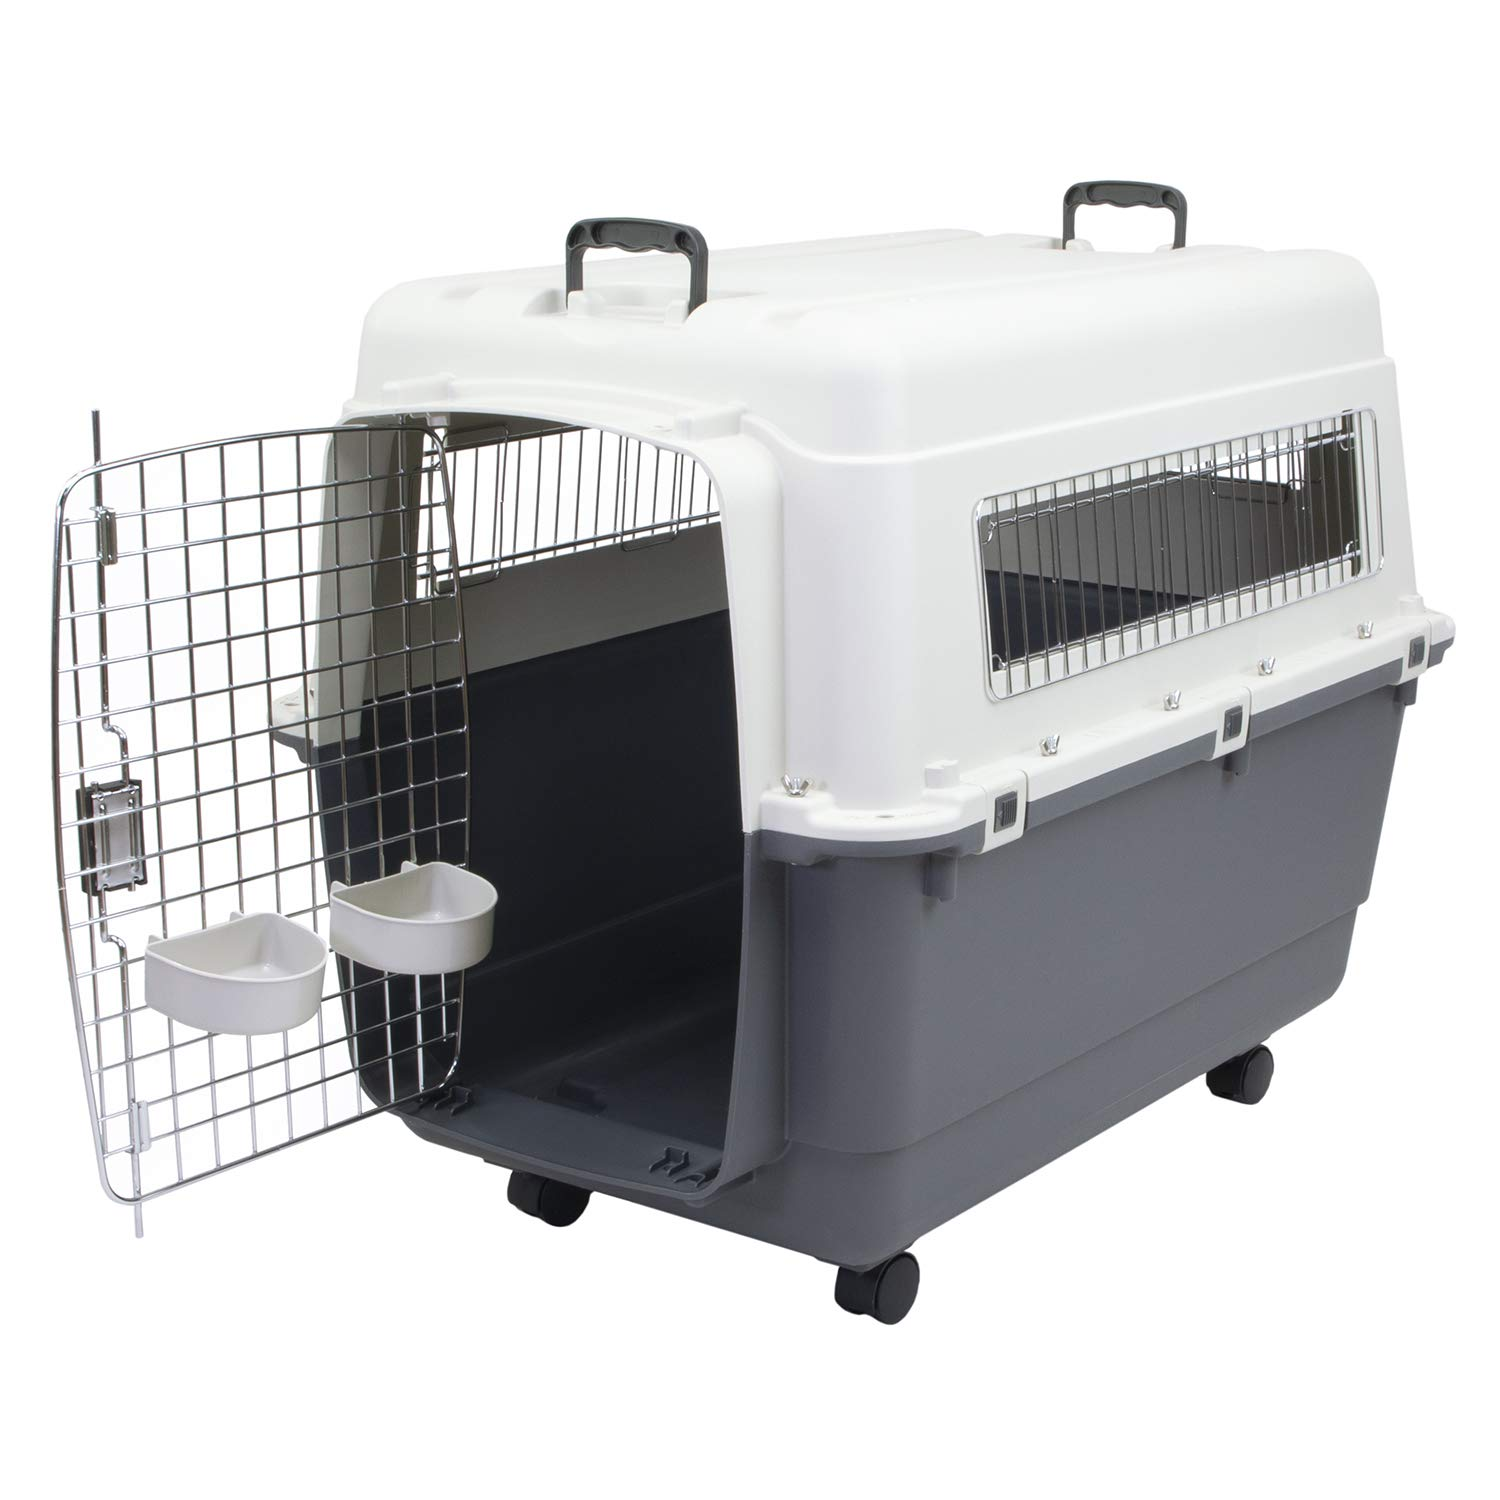 Chesapeake Bay CM-10039-CS01 Heavy-Duty Rolling Airline Pet Crate-X-Large, 18 x 10 x 1.5 inches, Gray by Chesapeake Bay